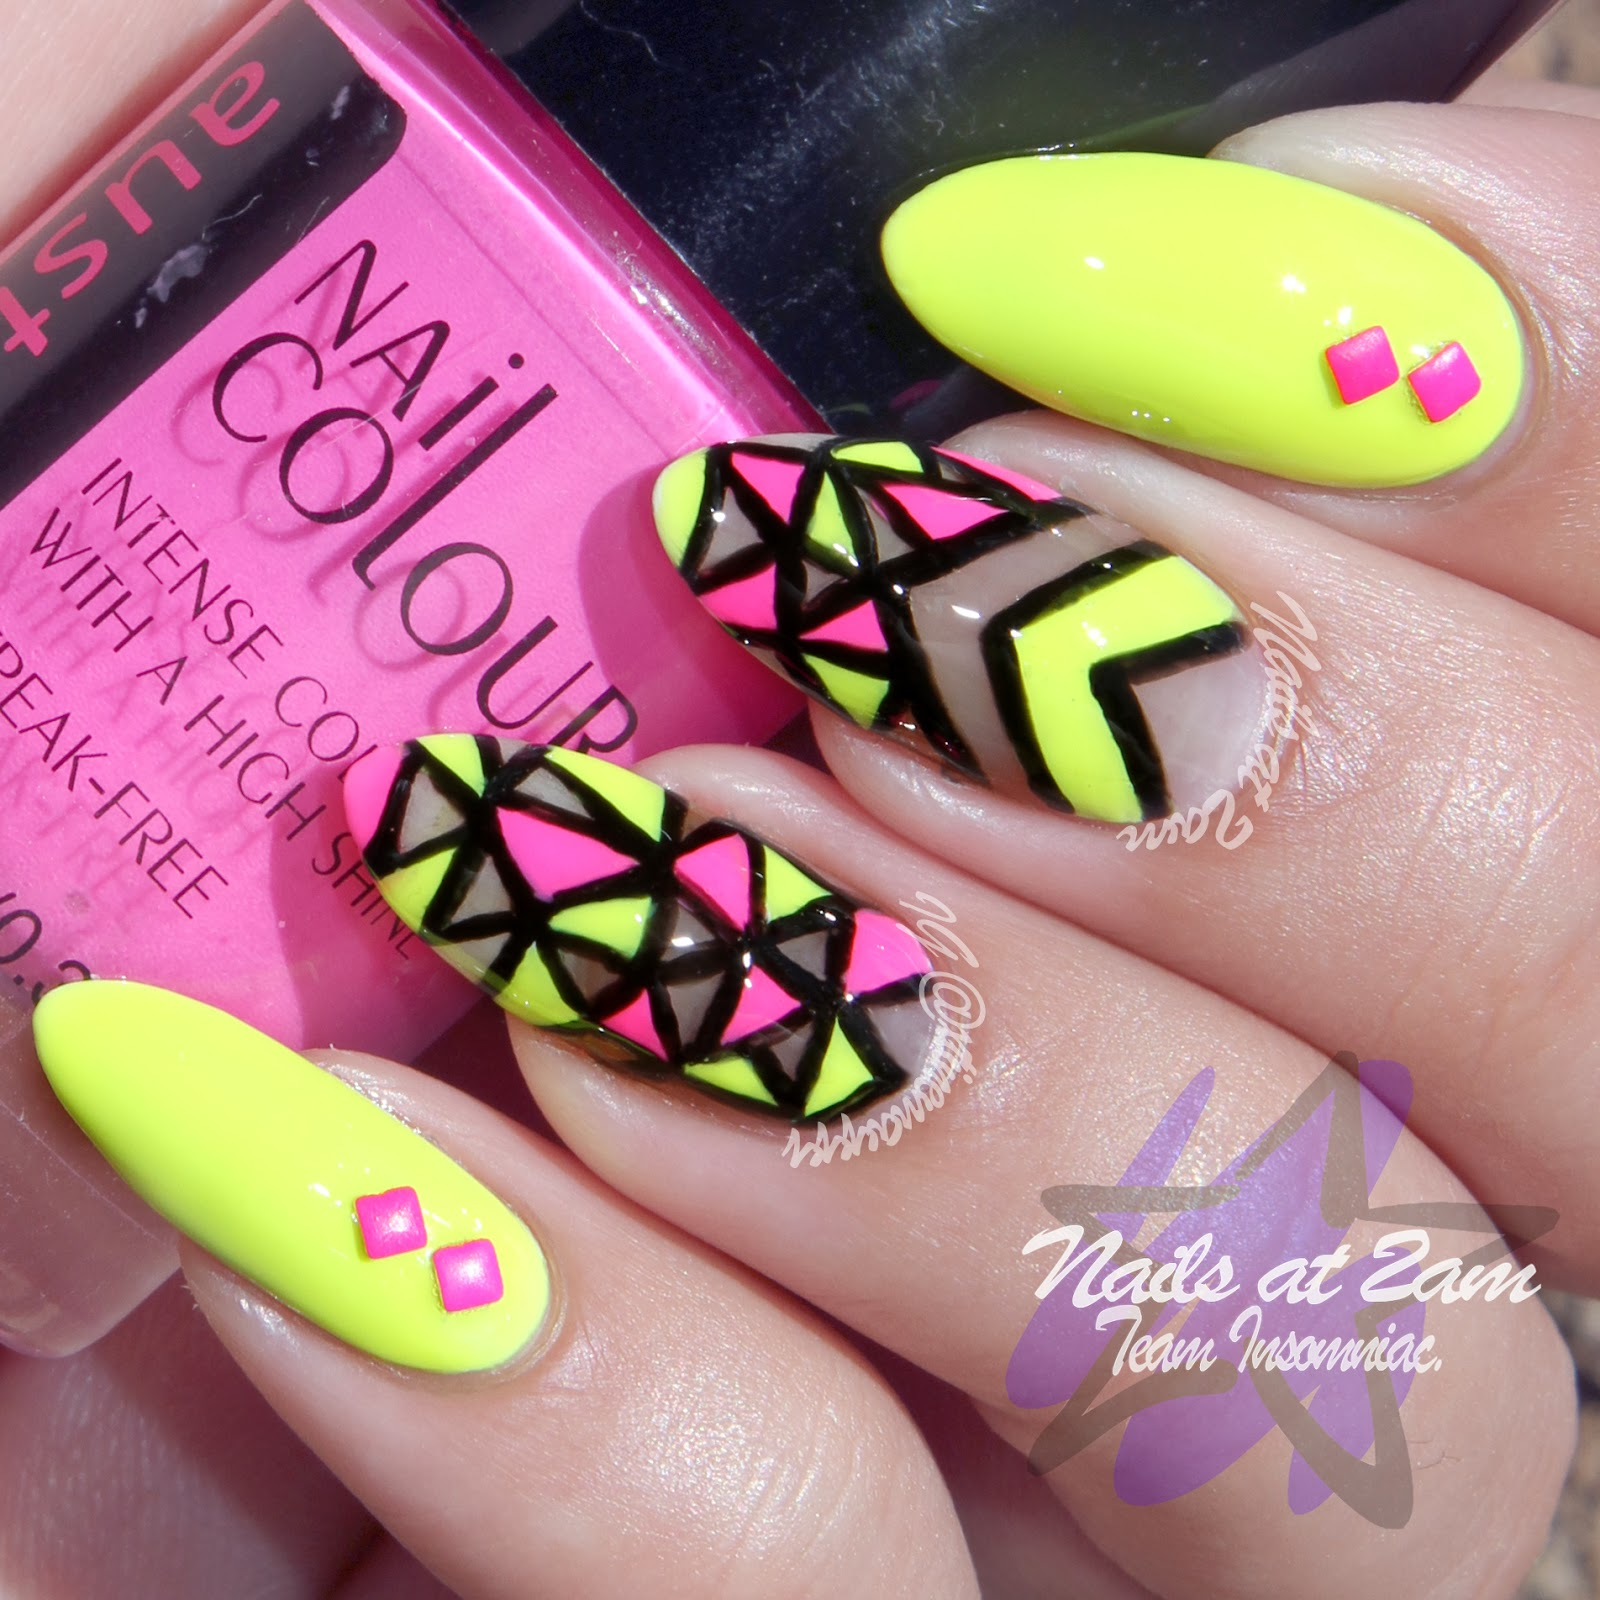 Nails At 2am: TUTORIAL: Neon Cut-Out Nails